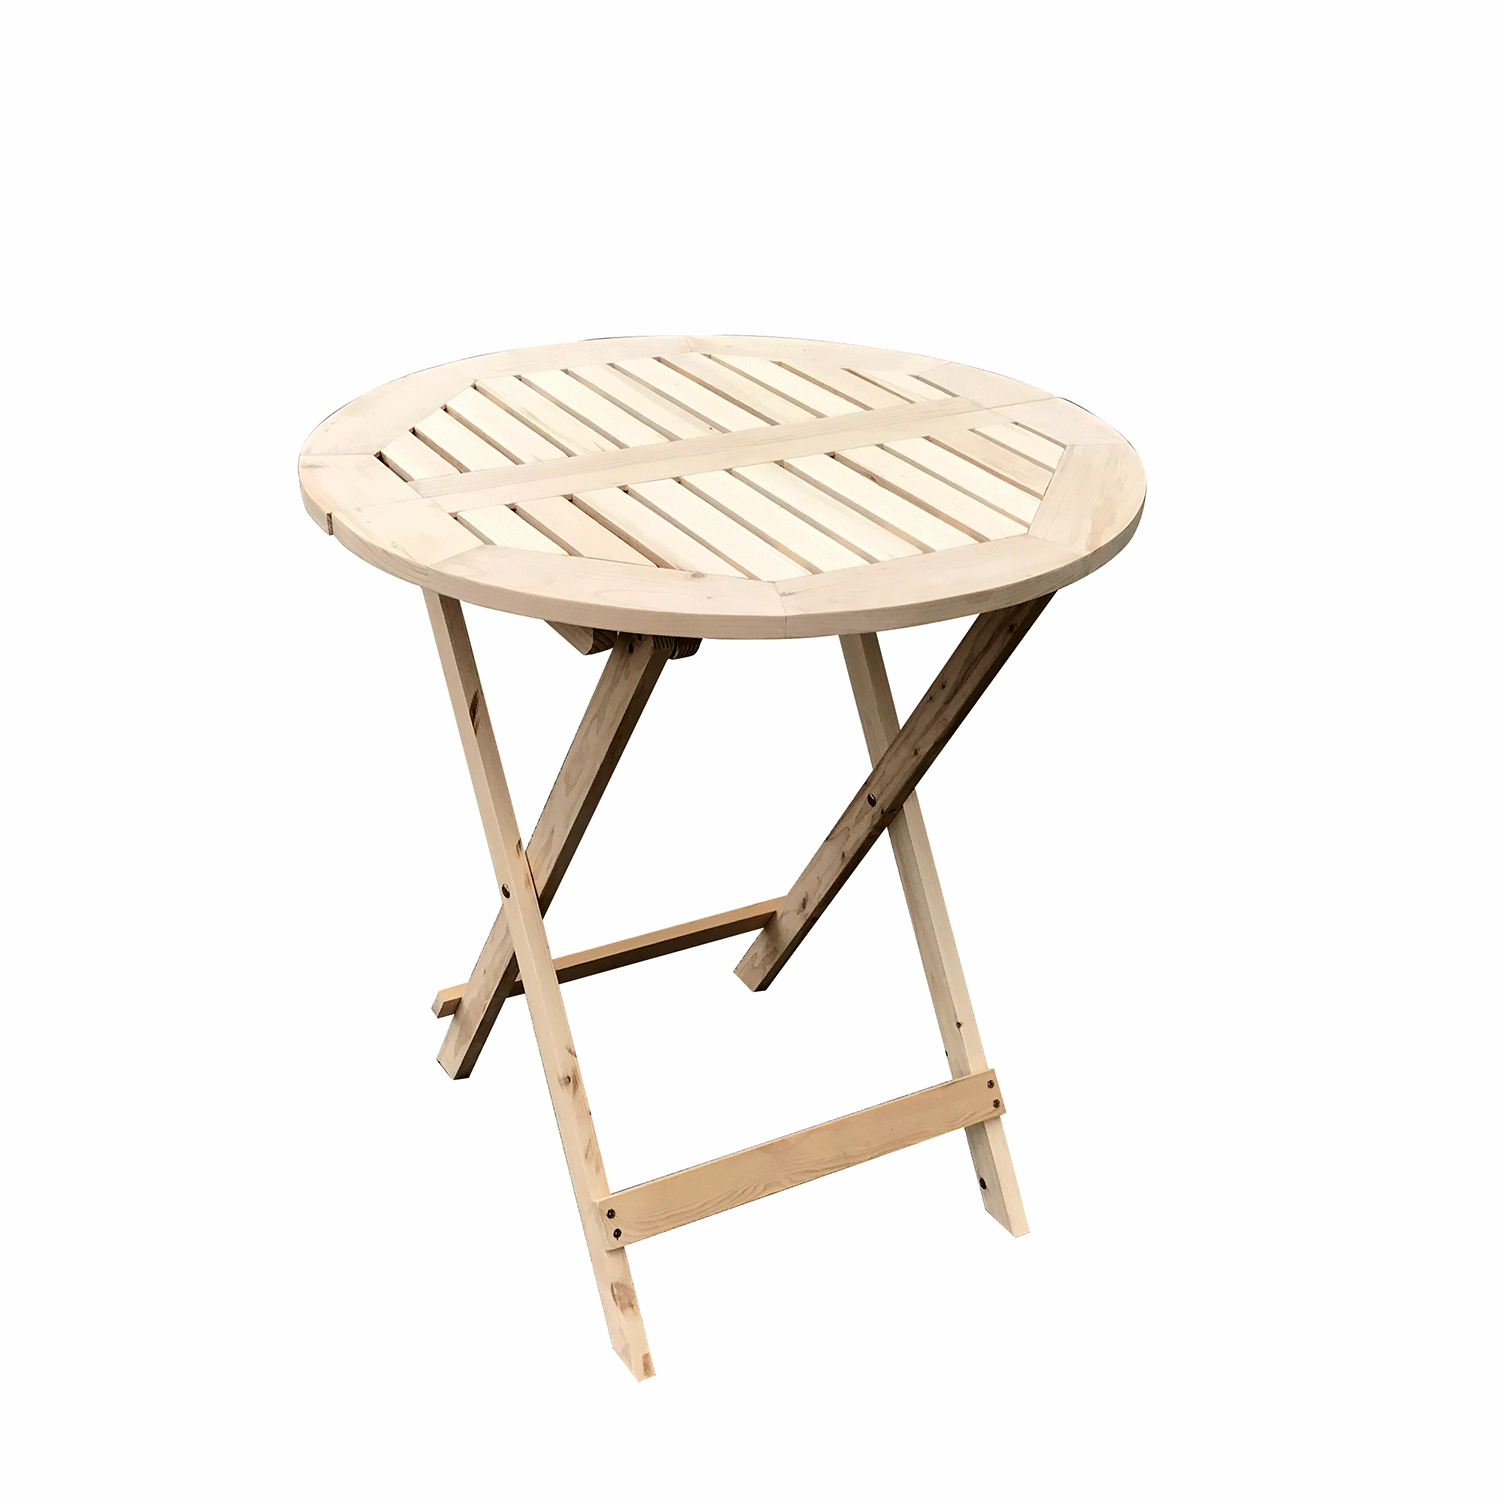 Wooden folding table outdoor garden wood deck furniture for Furniture xo out of business